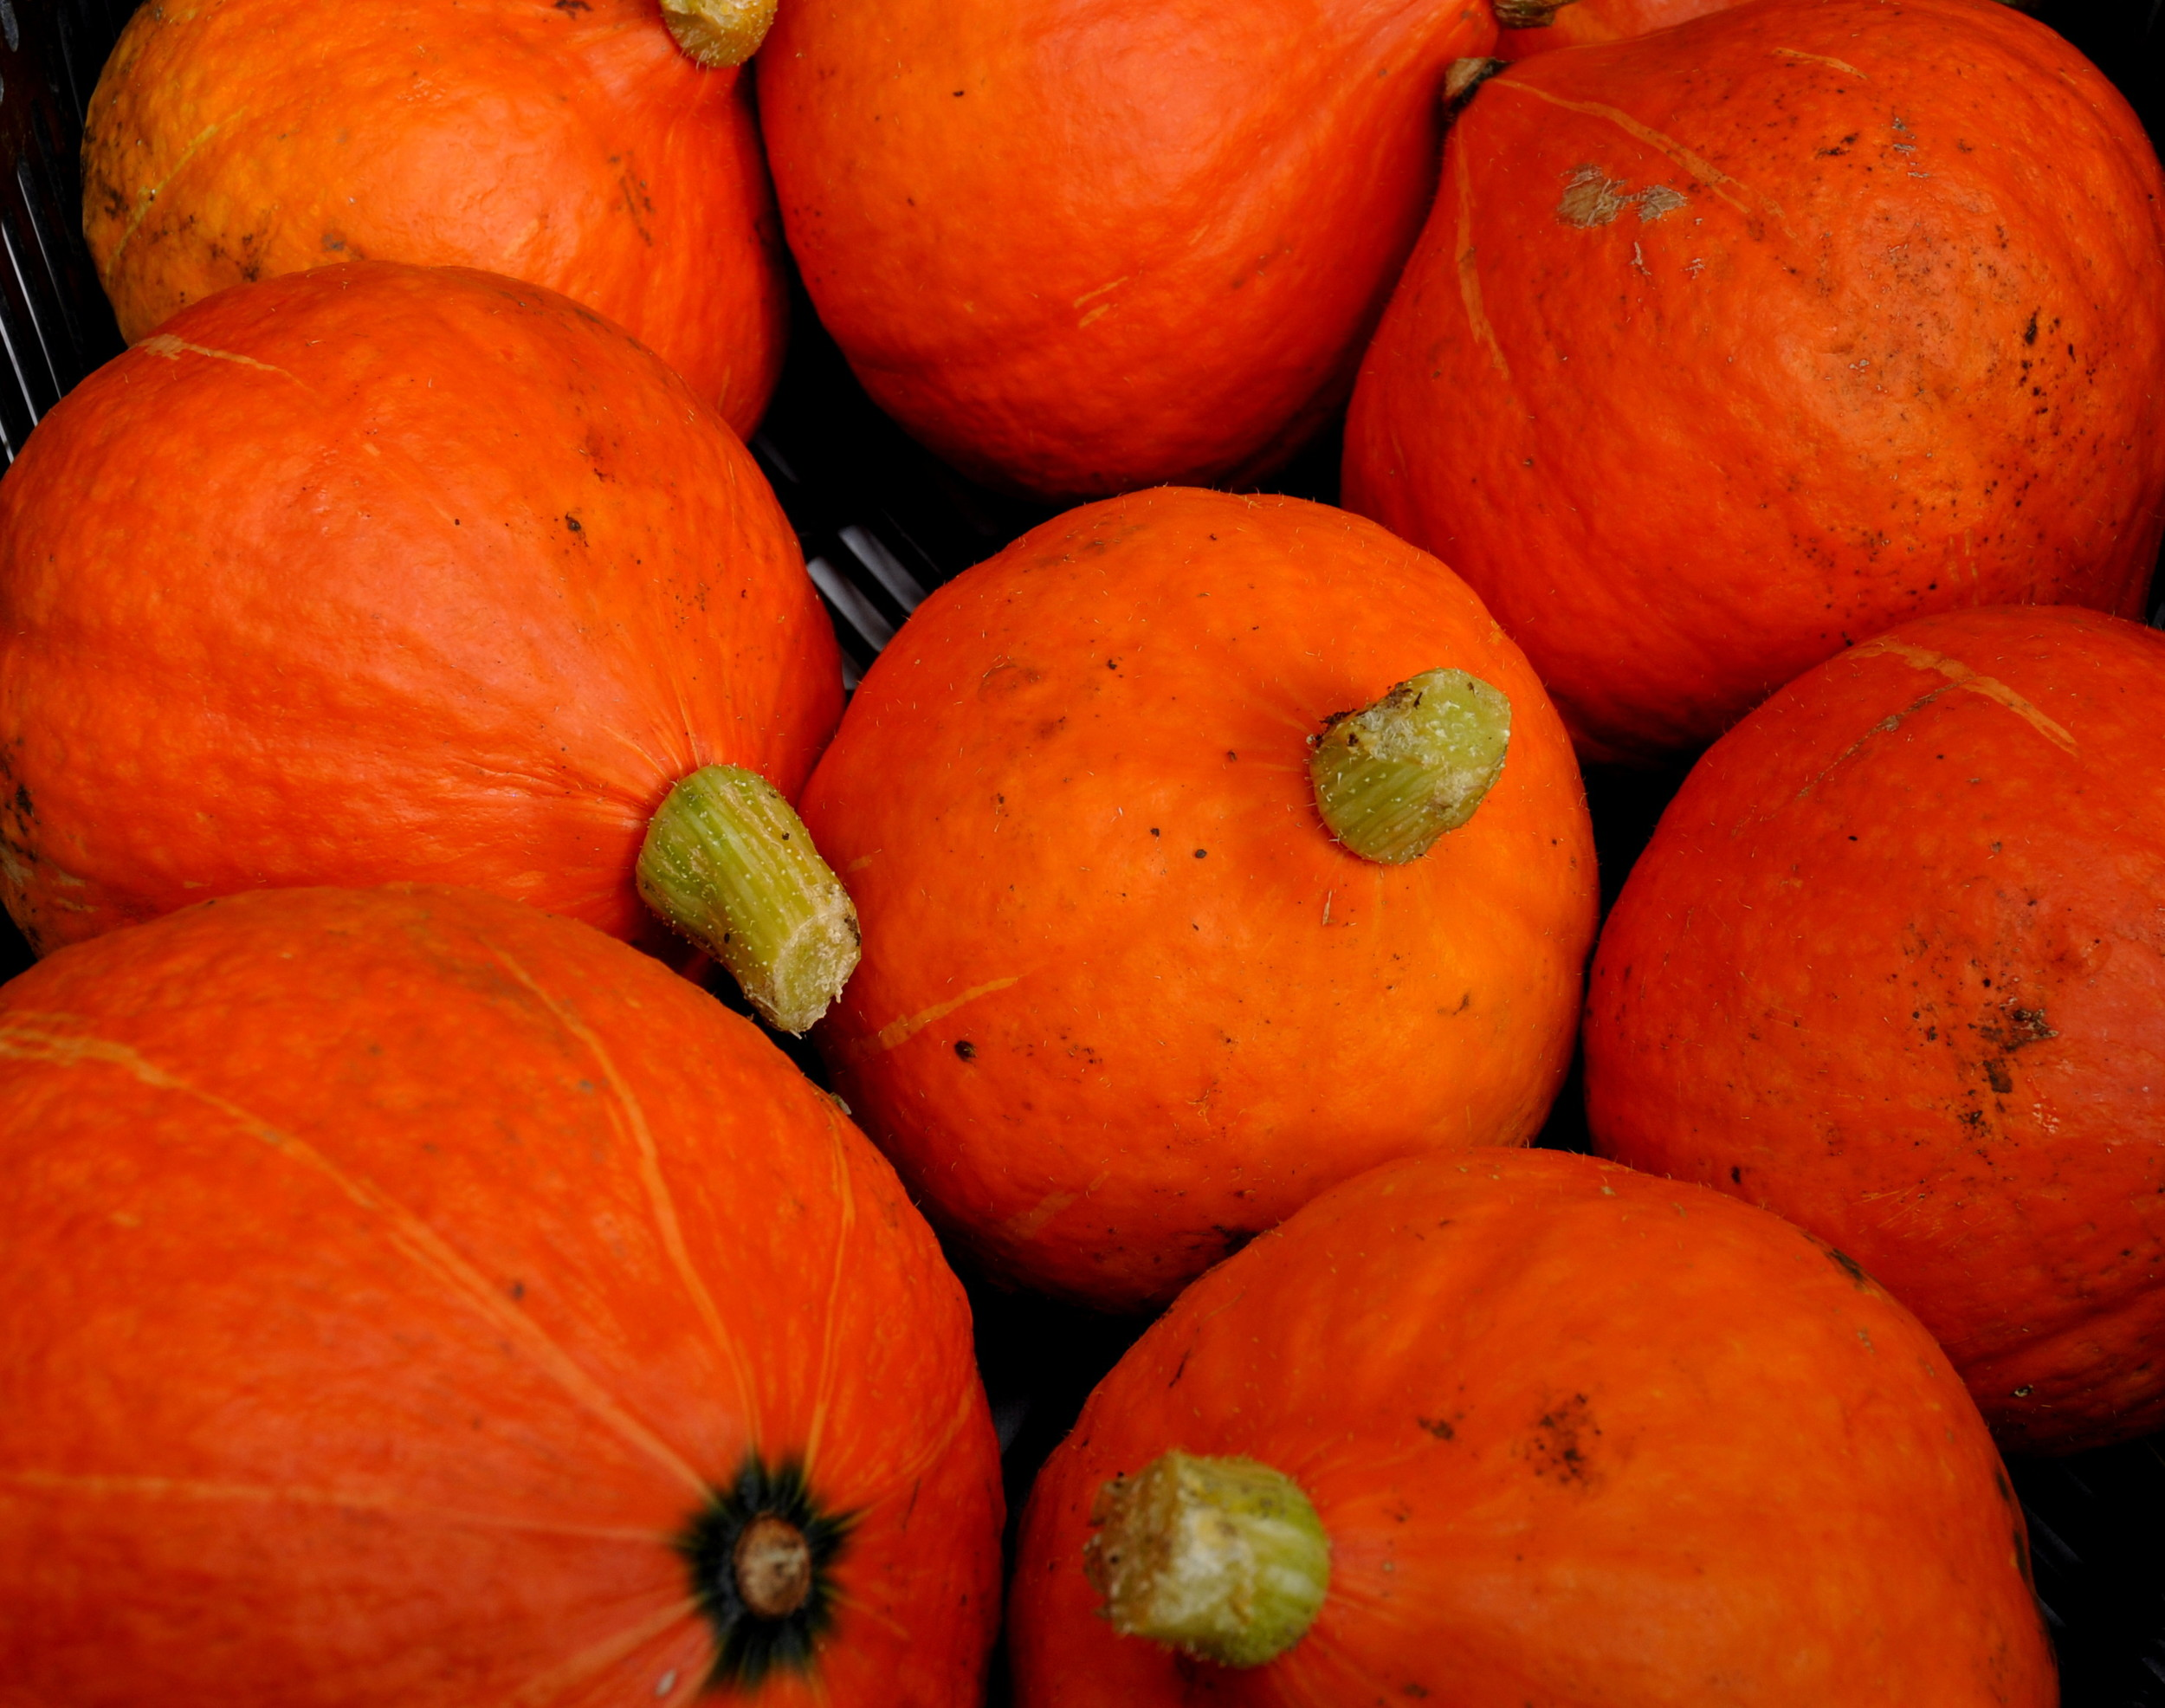 Red kabocha winter squash from Stoney Plains Organic Farm. Photo copyright 2013 by Zachary D. Lyons.